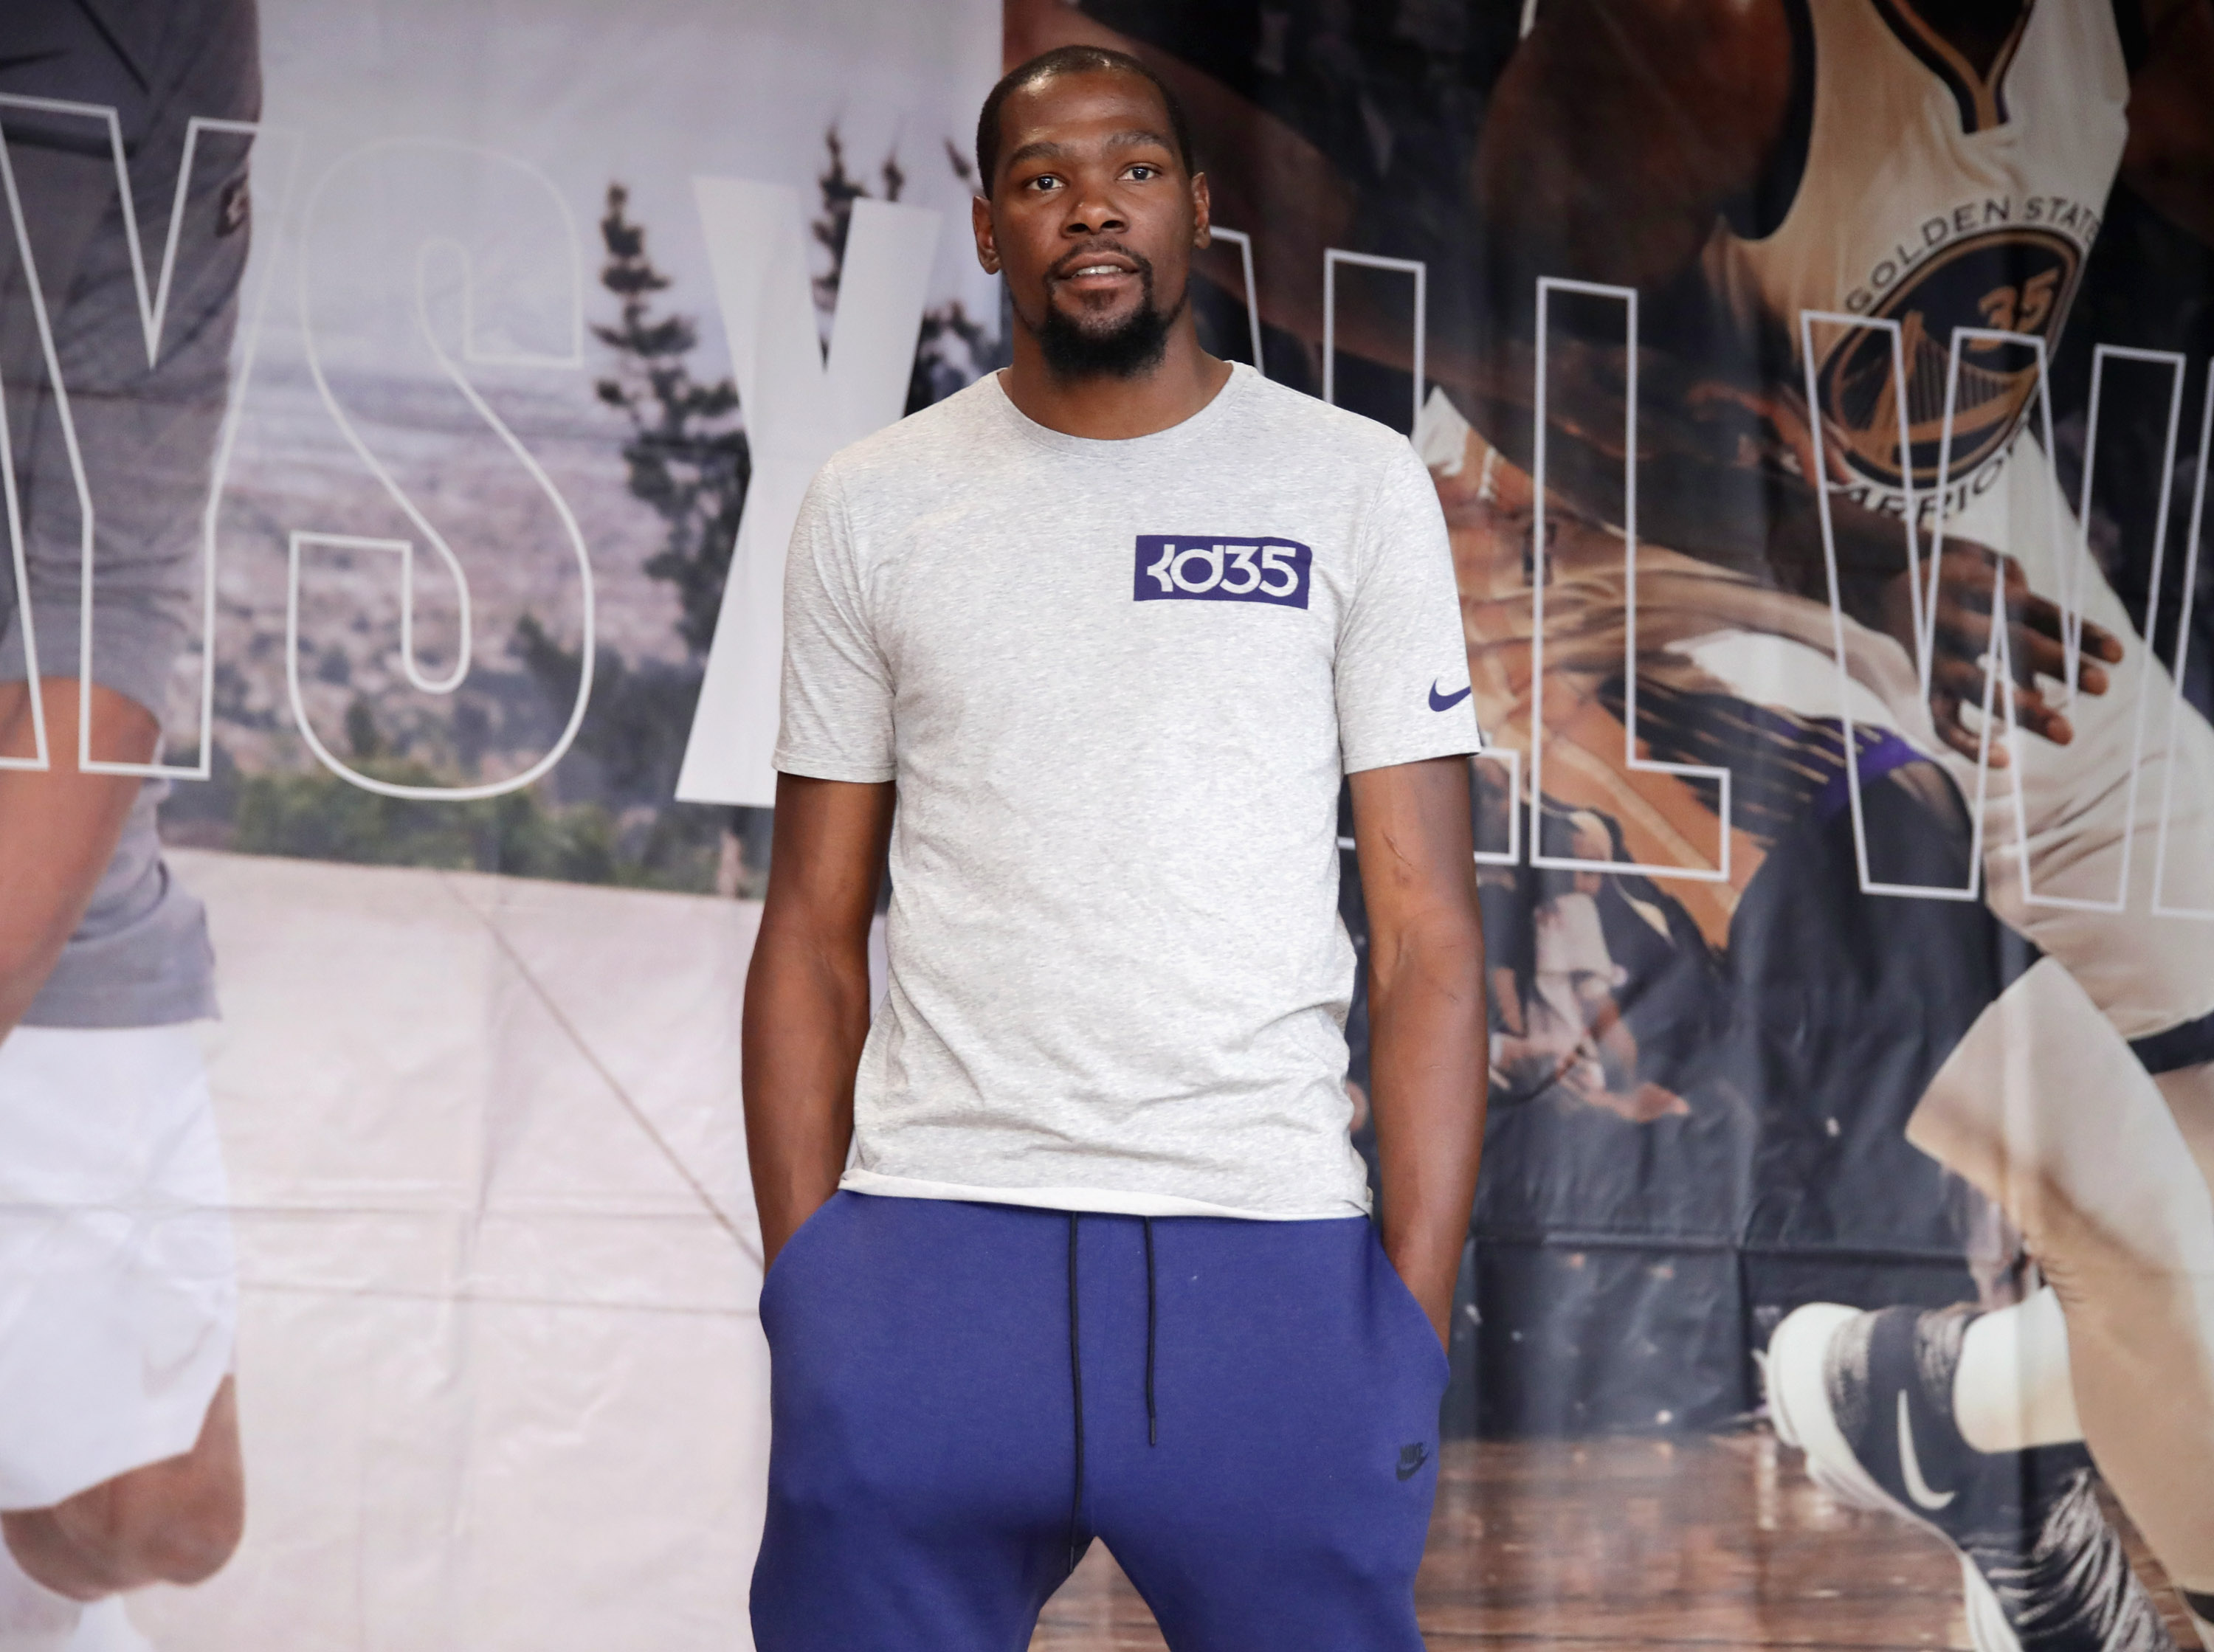 Kevin Durant Speaks Out After Suffering From An Injury During Game 5 Of The NBA Finals